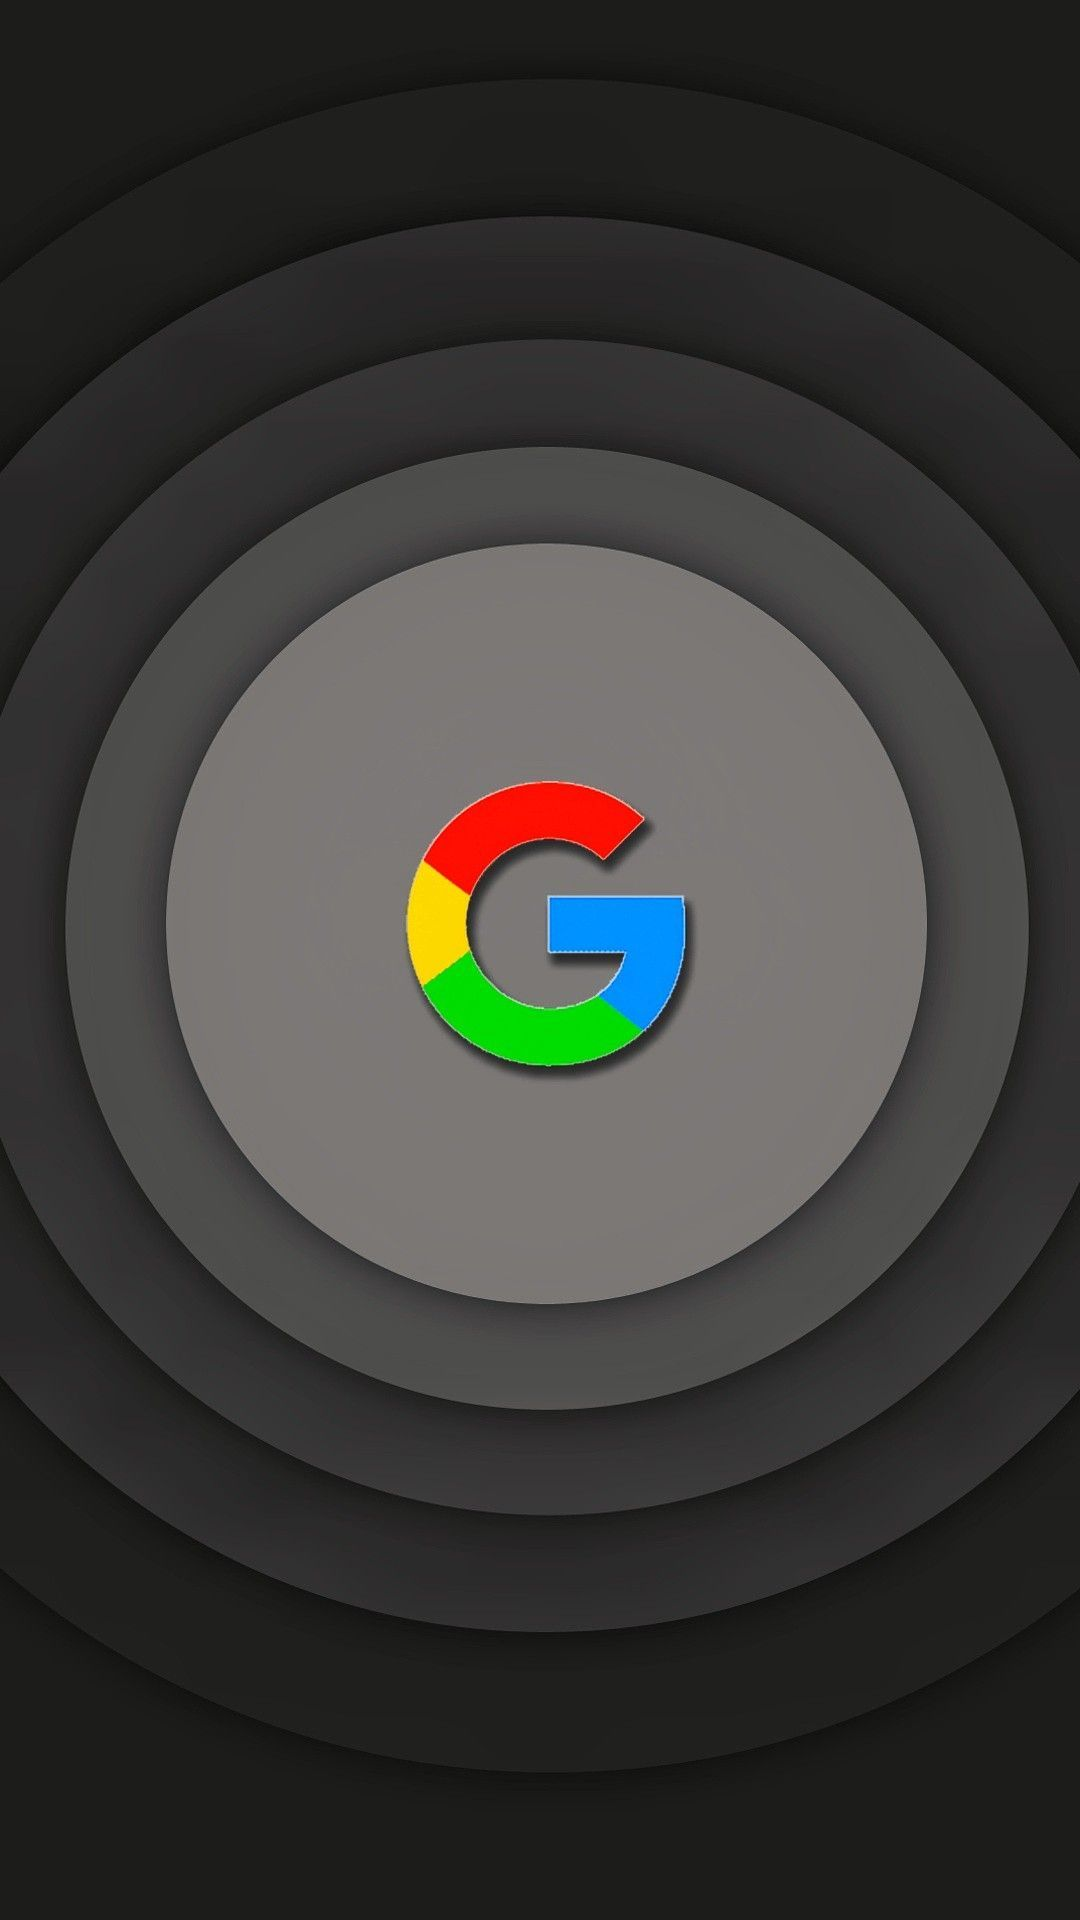 Google Background #Google #Background #wallpapers in 2020 ...